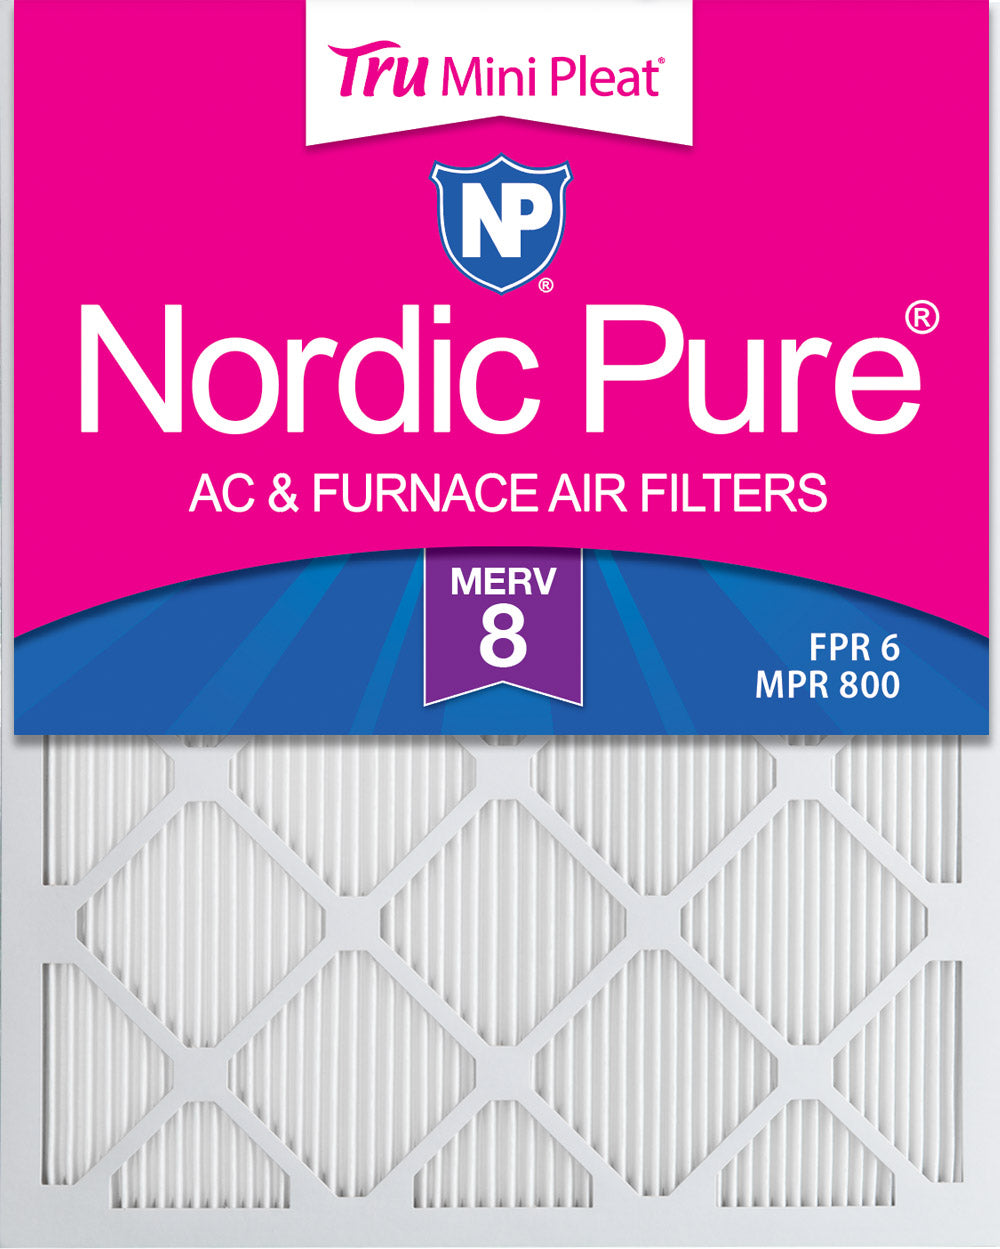 14x25x1 Tru Mini Pleat MERV 8 AC Furnace Air Filters 6 Pack